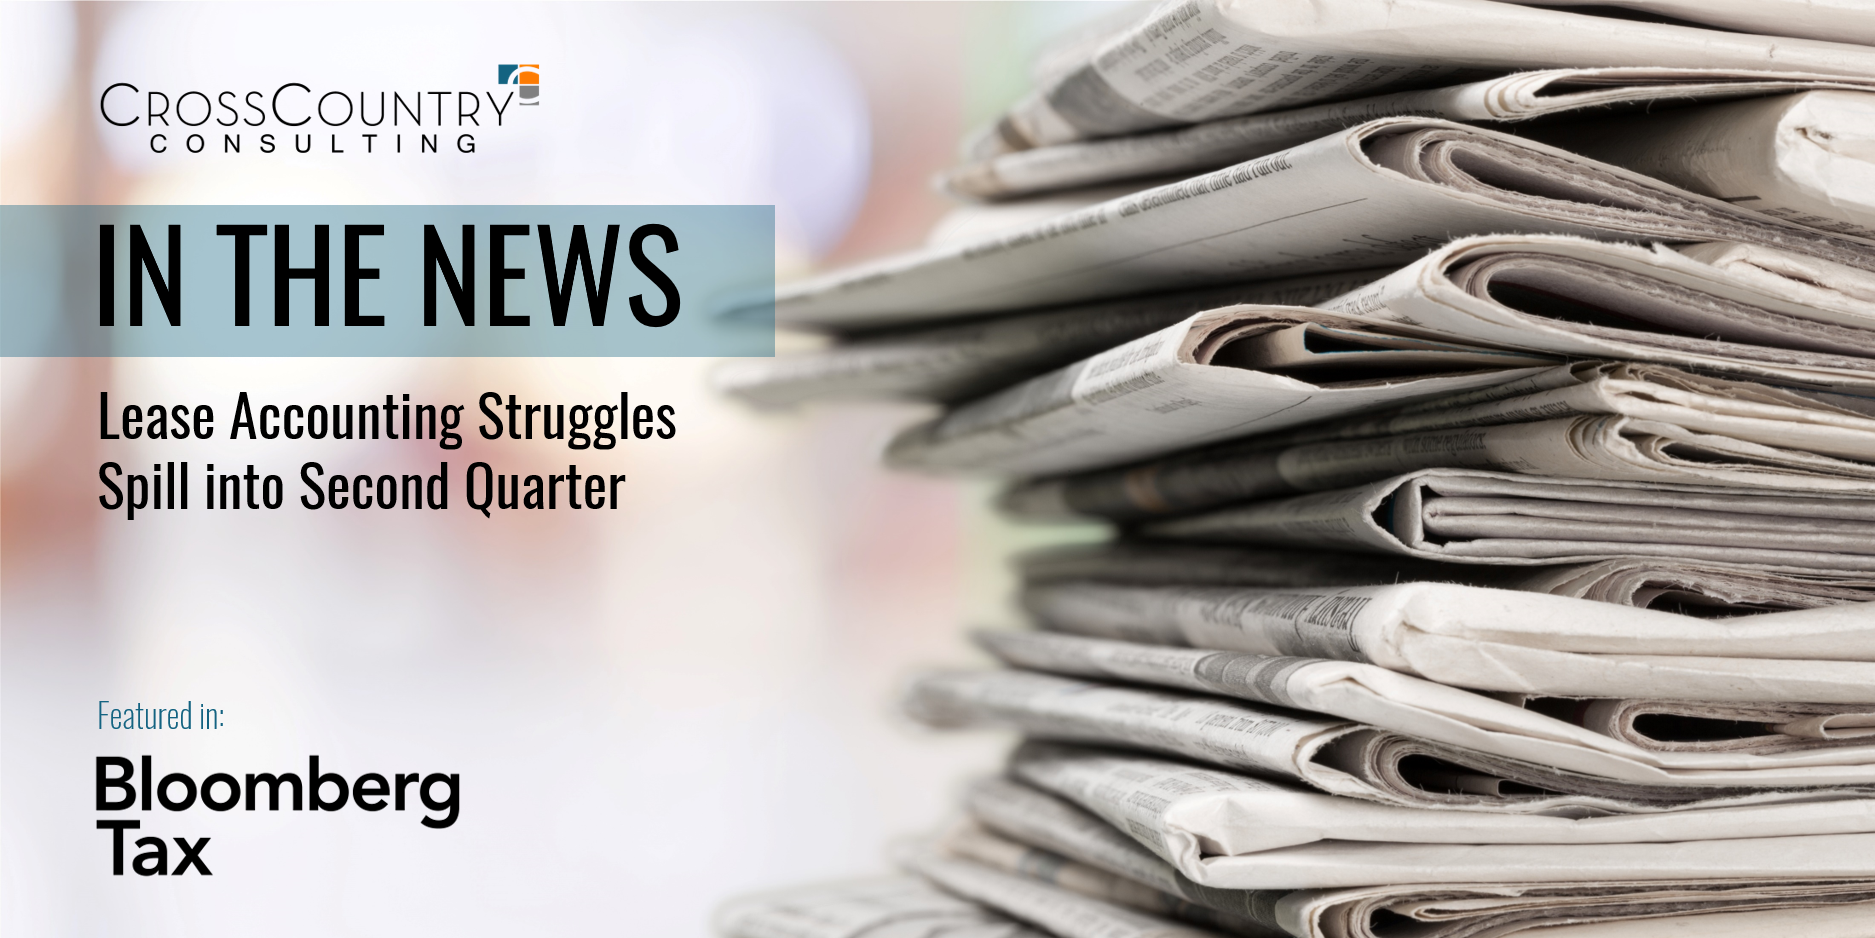 IntheNews-LeaseAccountingStrugglesSpillintoSecondQuarter